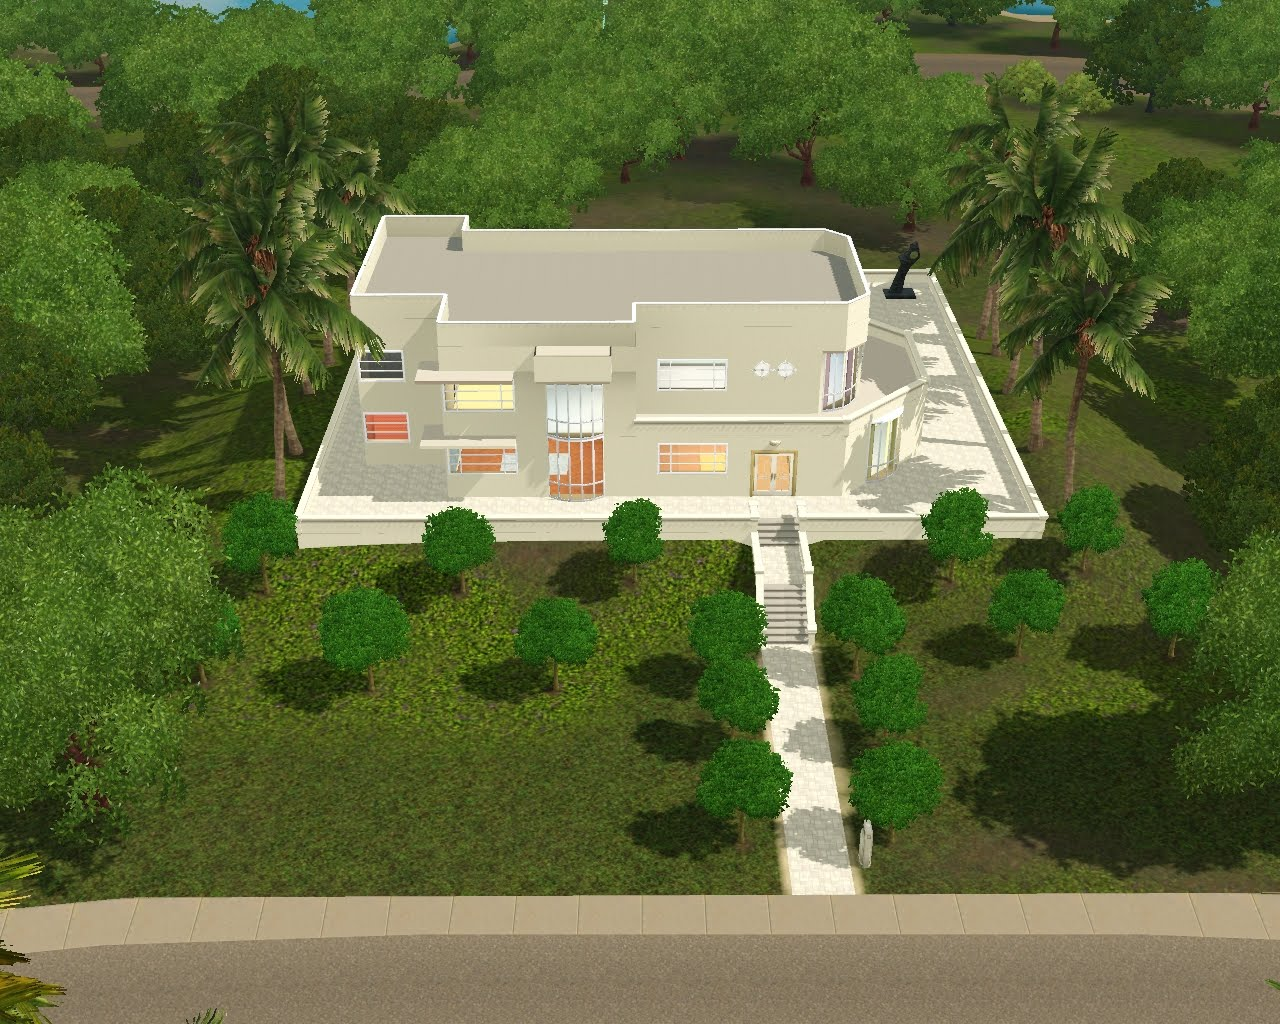 Summer's Little Sims 3 Garden